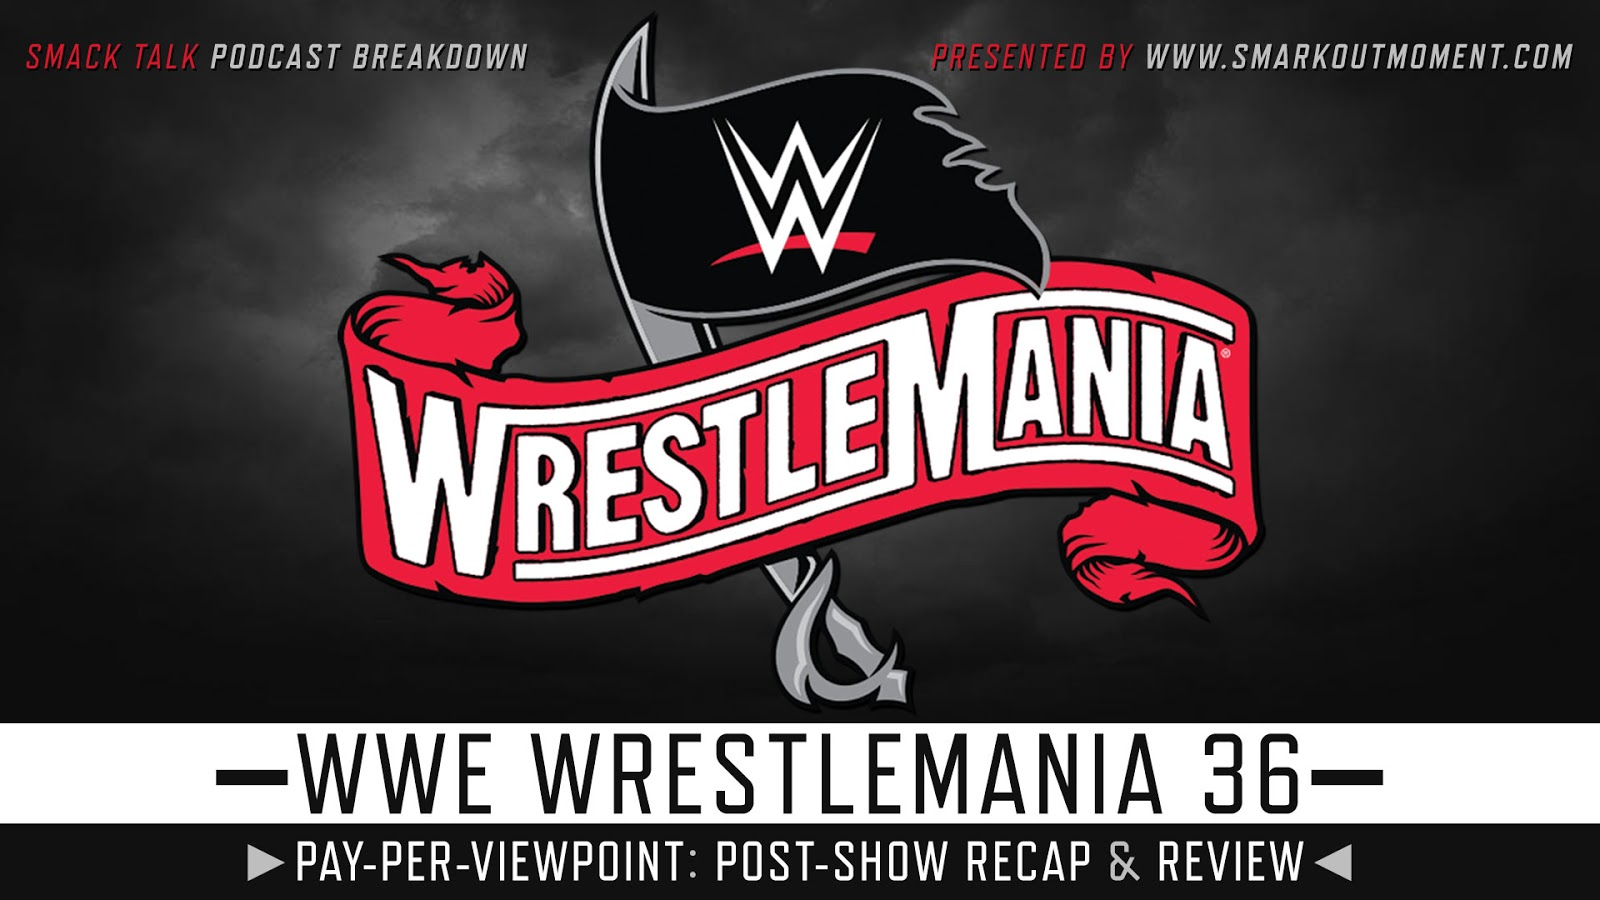 WWE WrestleMania 36 Recap and Review Podcast